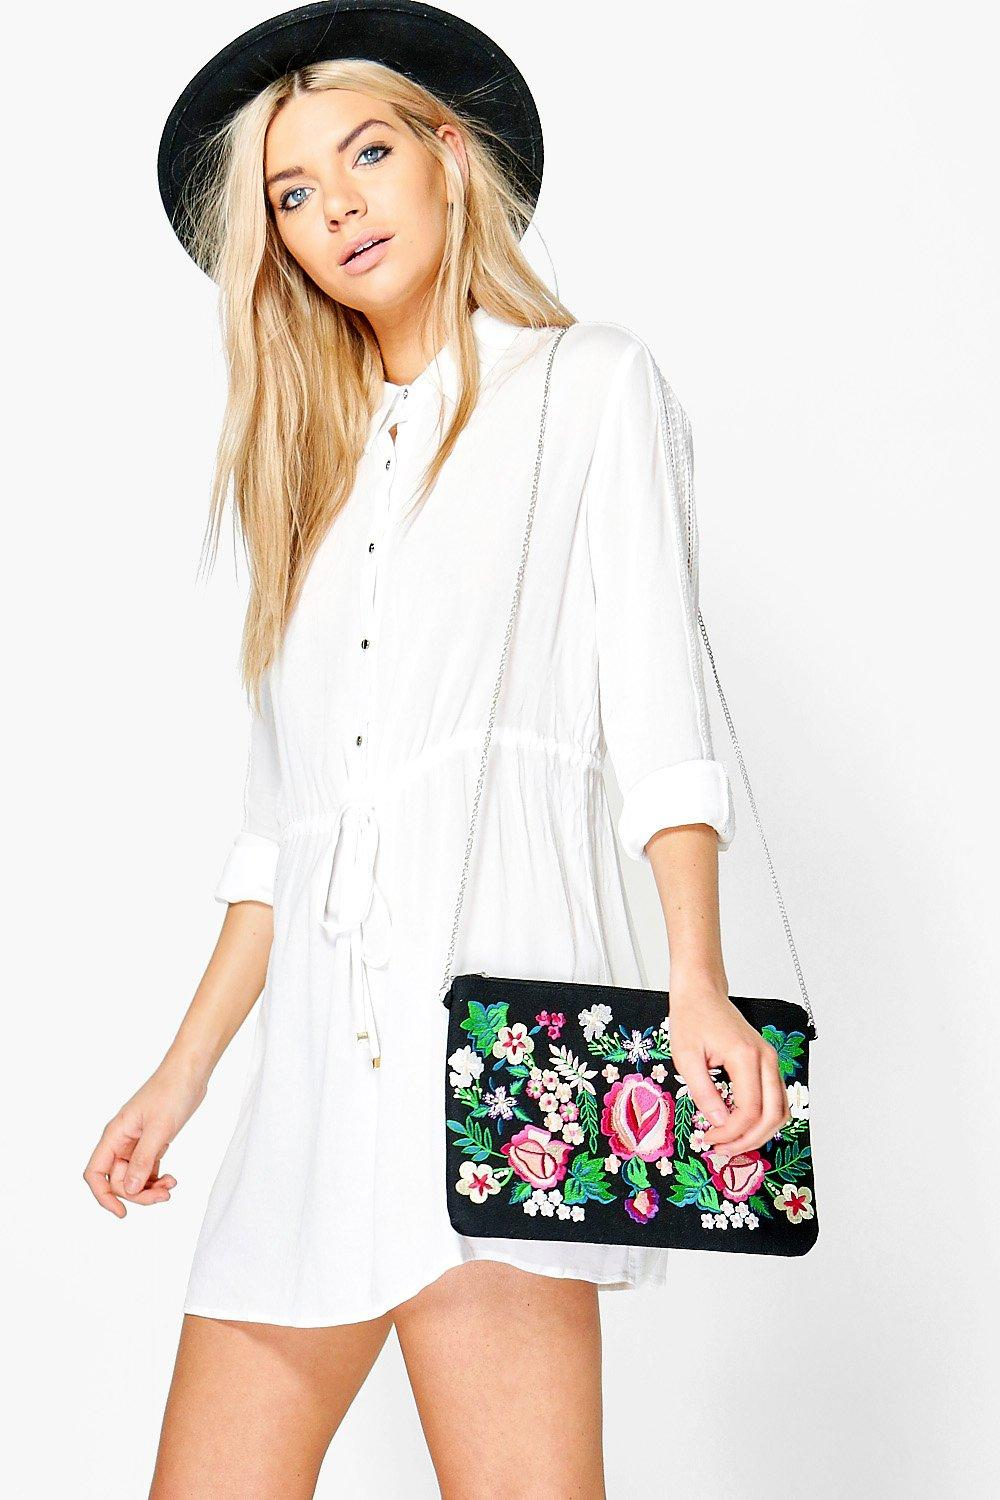 Awesome Details About Boohoo Womens Paige Sleeveless Belted Midi Shirt Dress